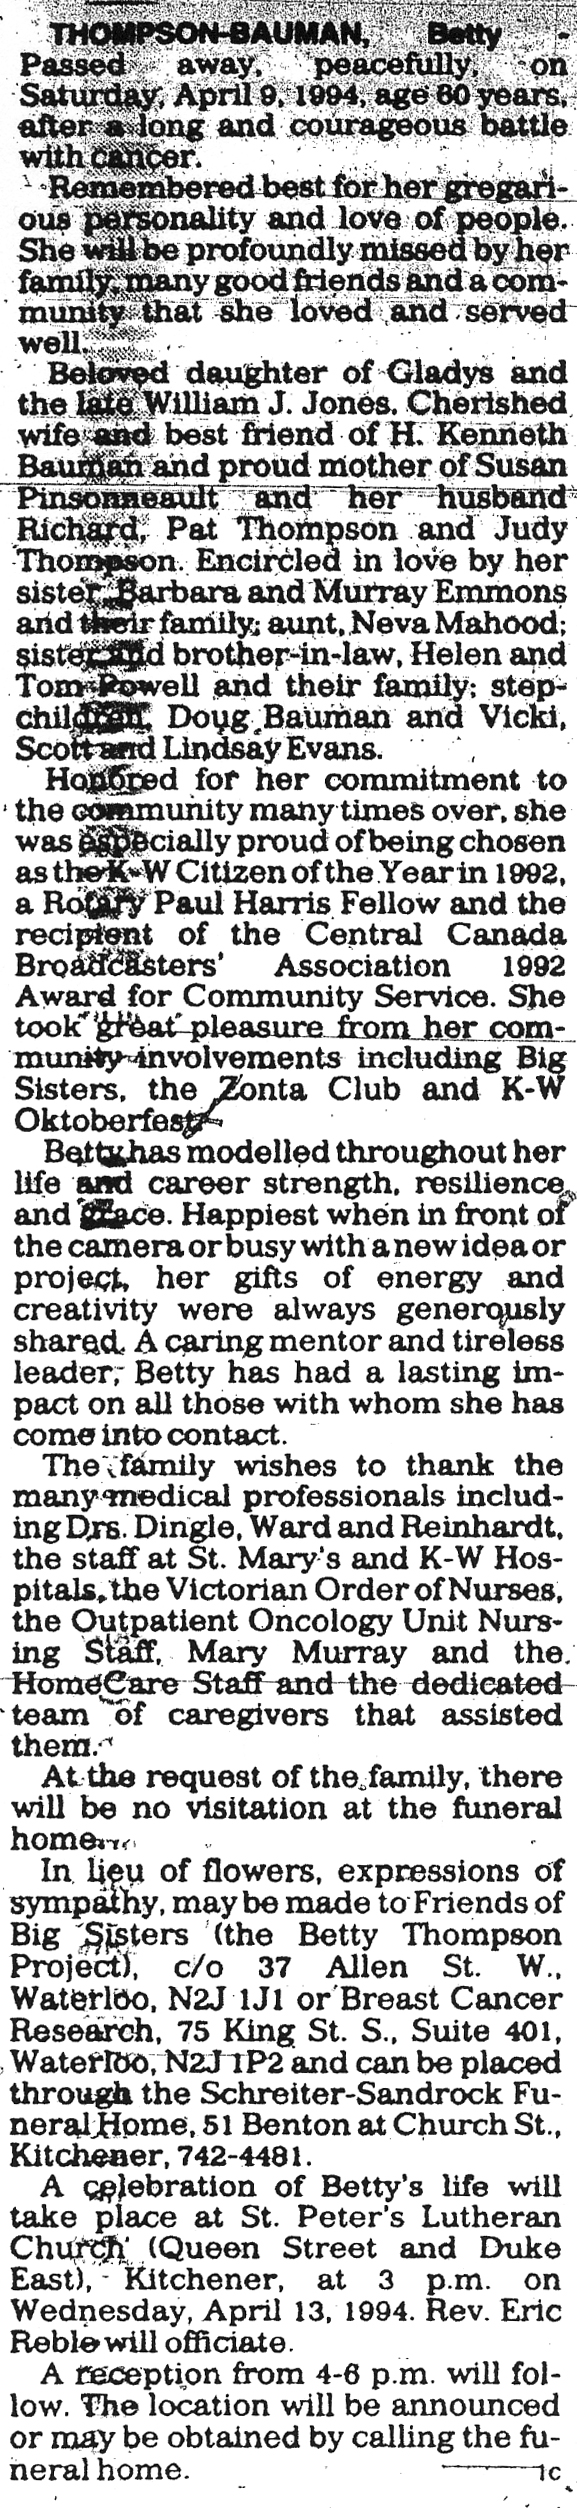 Thompson-Bauman, Betty - April 9, 1994 - Obit